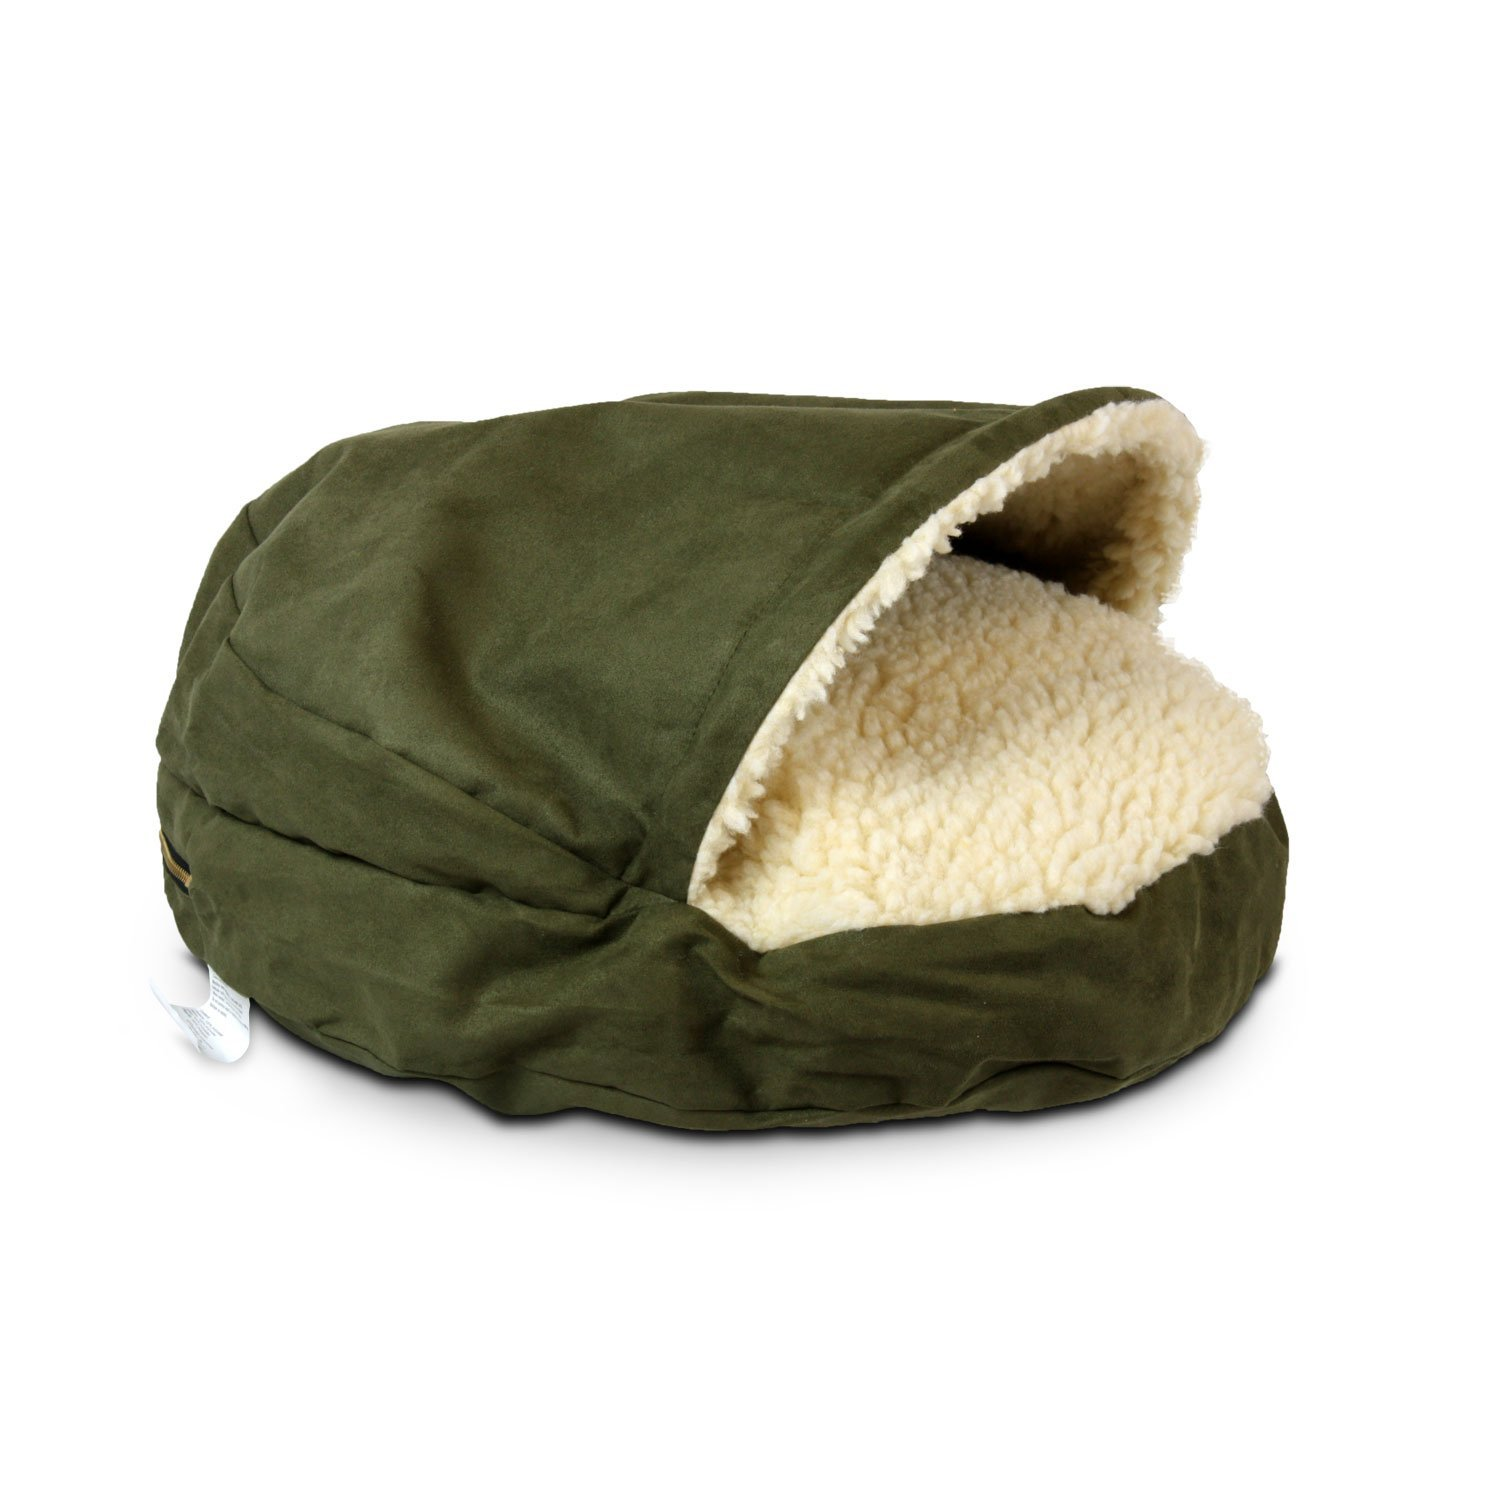 X-Large Snoozer 87481 X-Large Luxury Cozy Cave Pet Bed, Olive